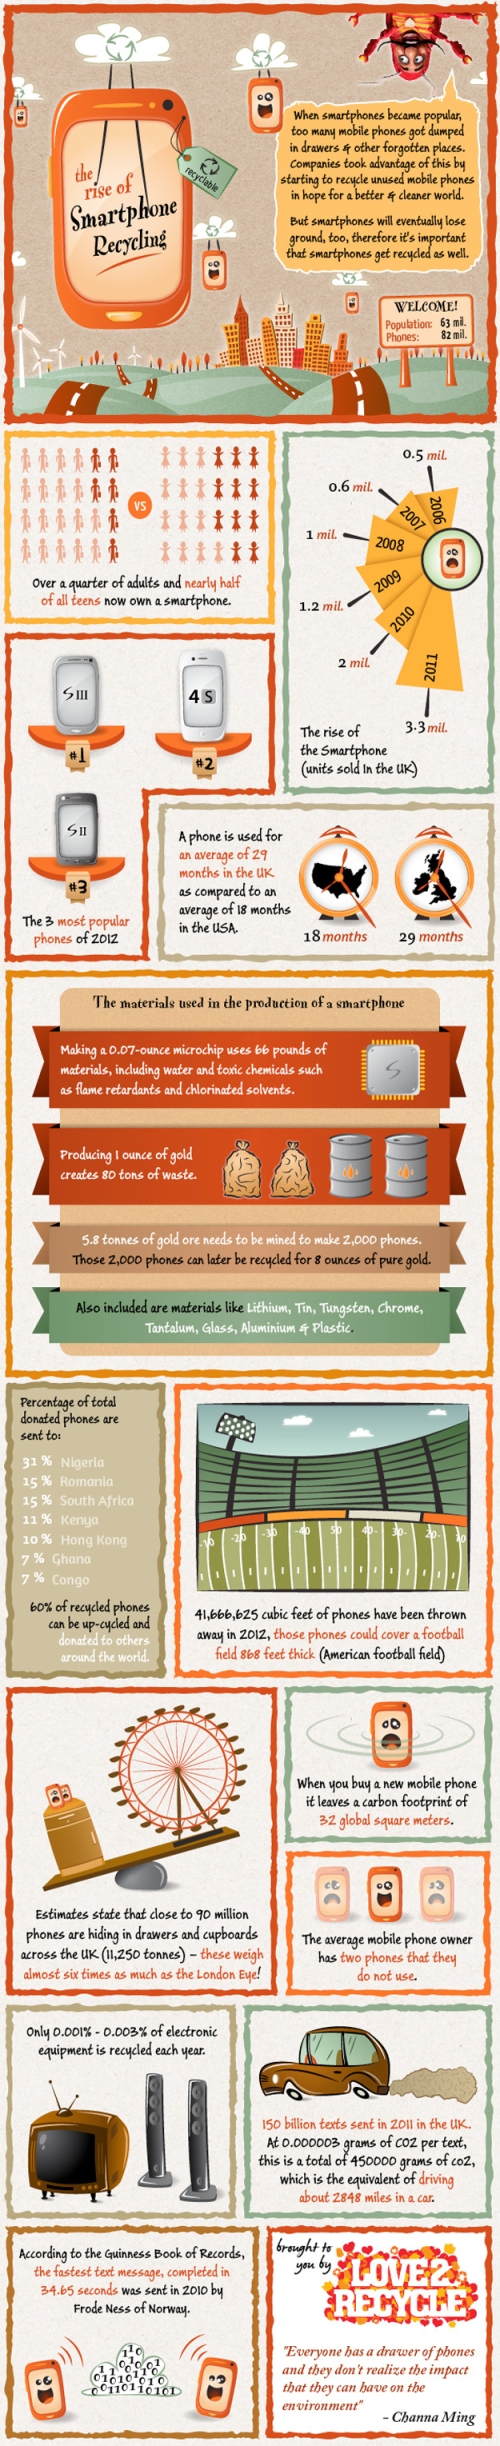 rise-of-smartphone-recycling-infographic